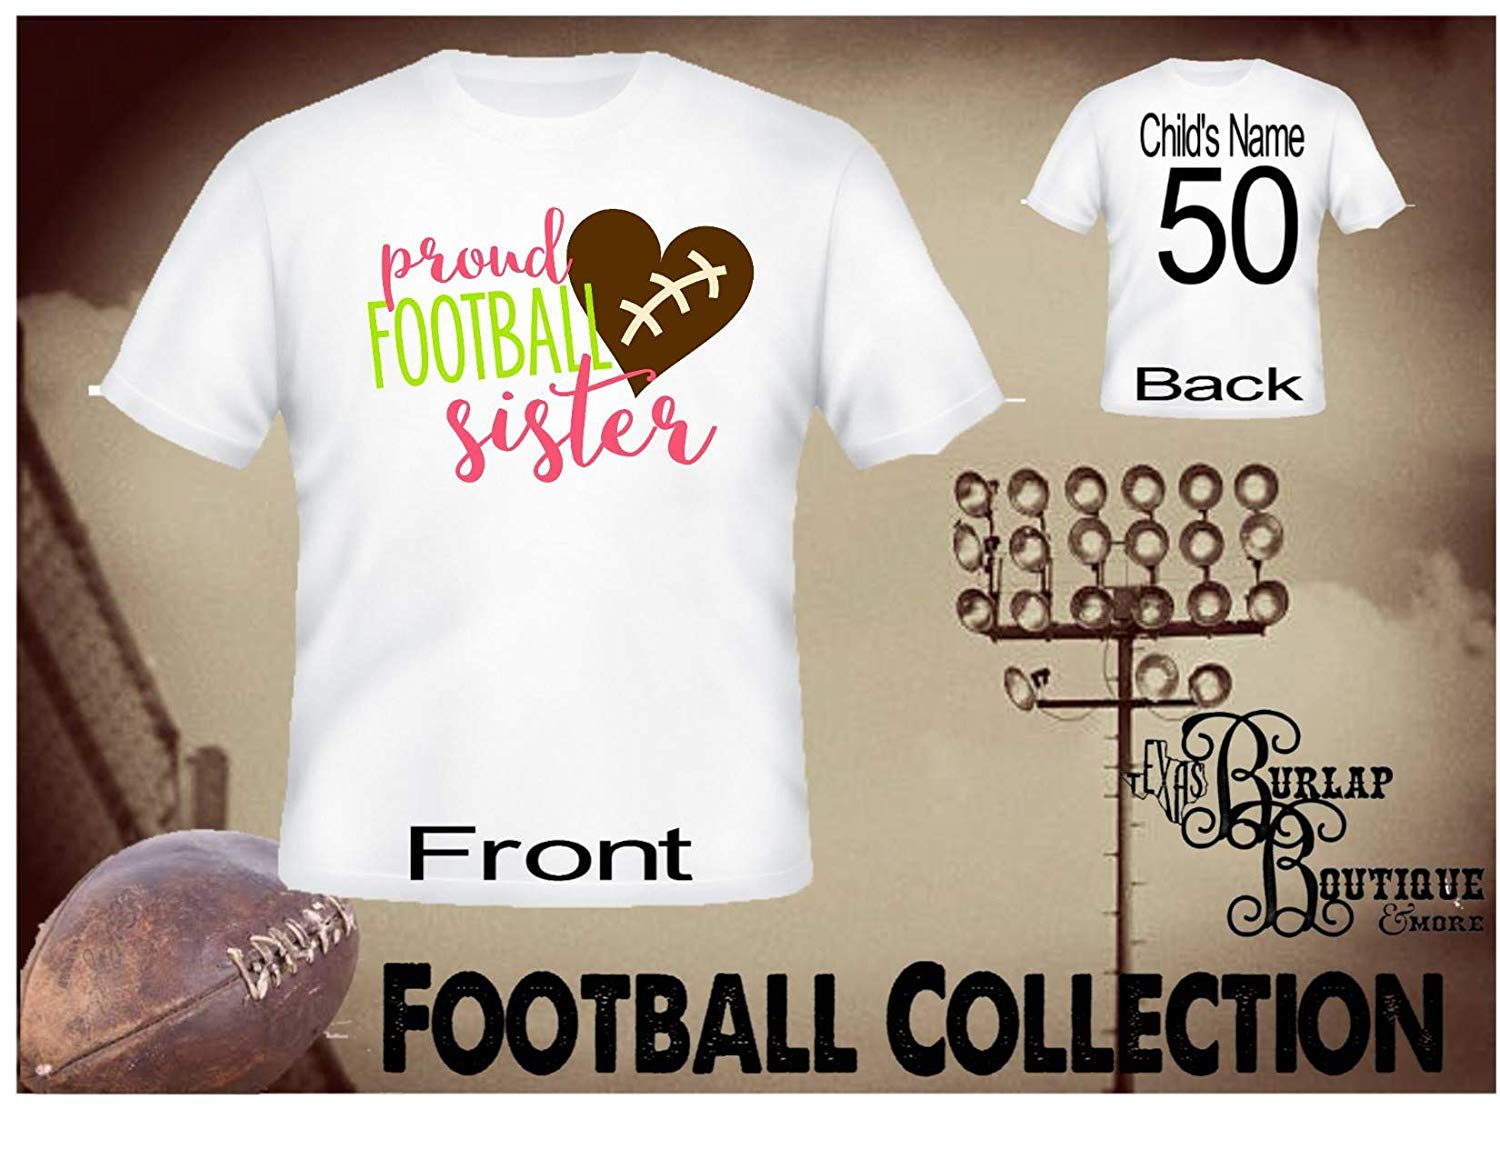 Handmade Personalized Football Shirt, Proud Football Sister, Tee, T - Shirt, Tshirt, Football Quotes, Kids, Girls, Adult, Sizes XS - 3XL Several colors